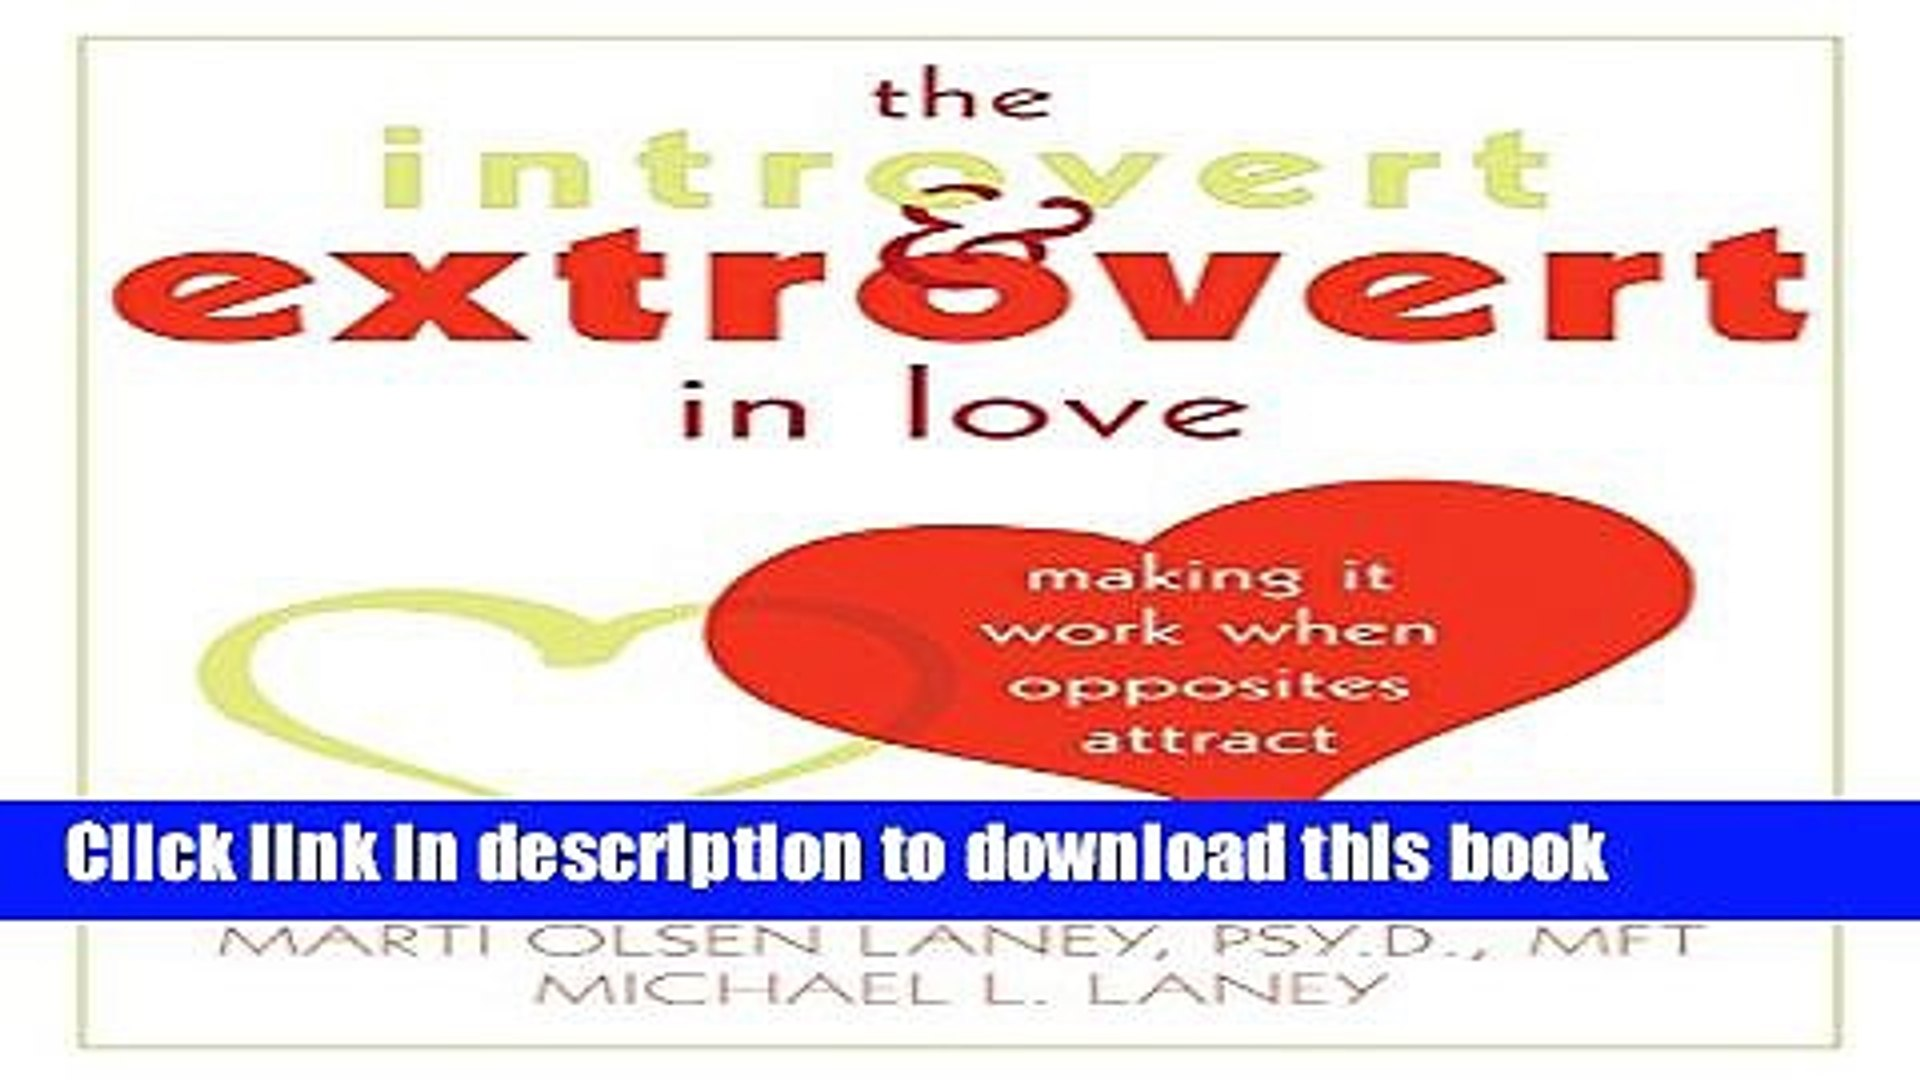 The Introvert and Extrovert in Love: Making It Work When Opposites Attract